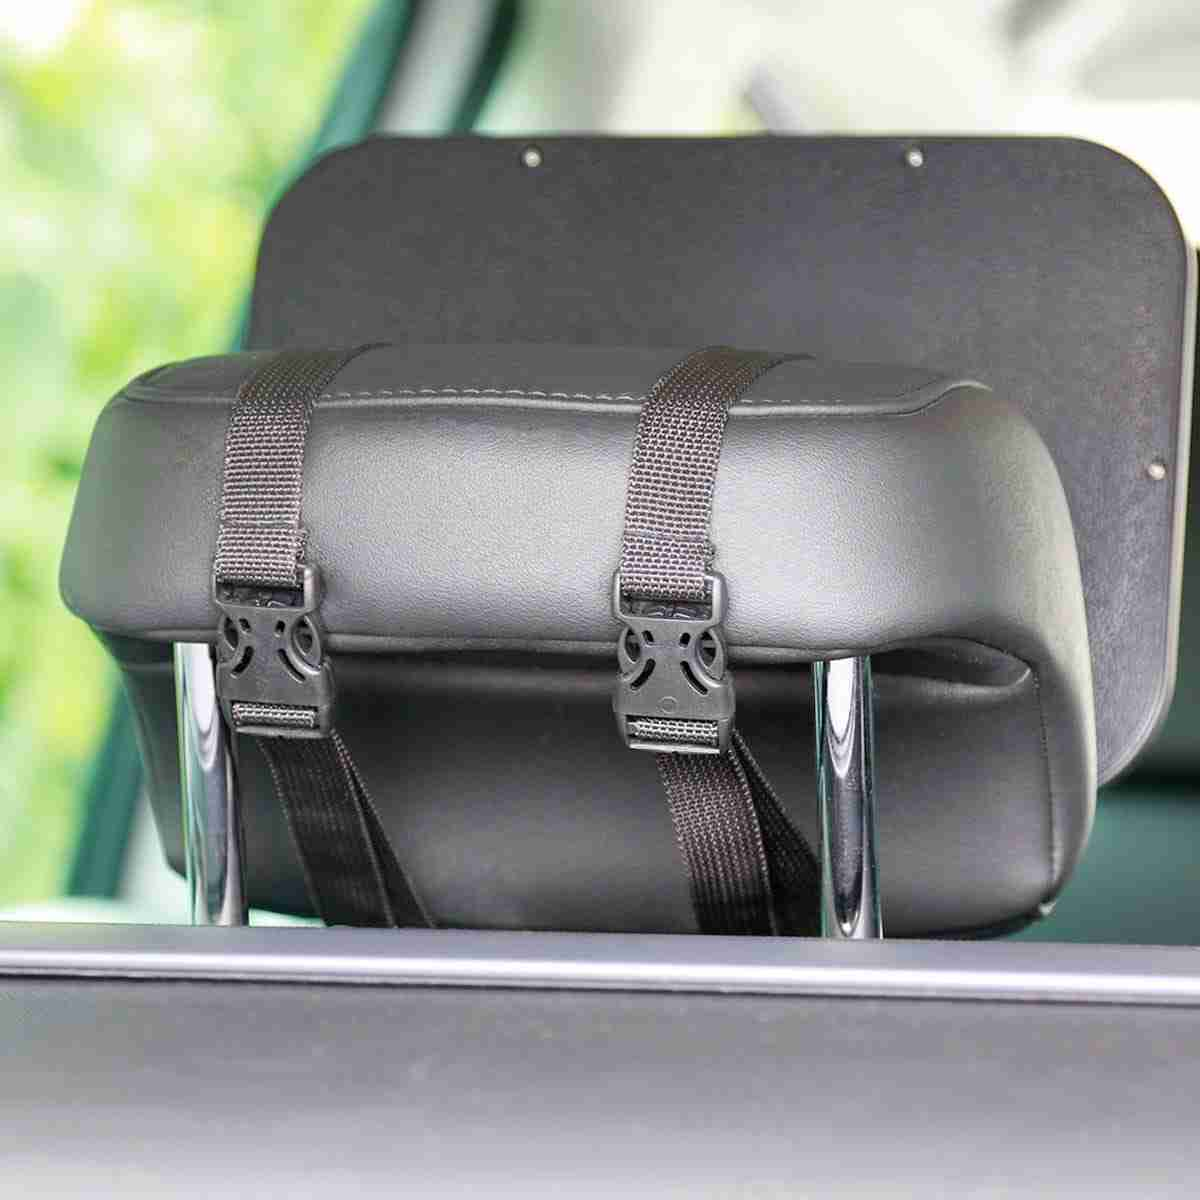 The Acti-Vue car mirror attaches easily to the cars headrest